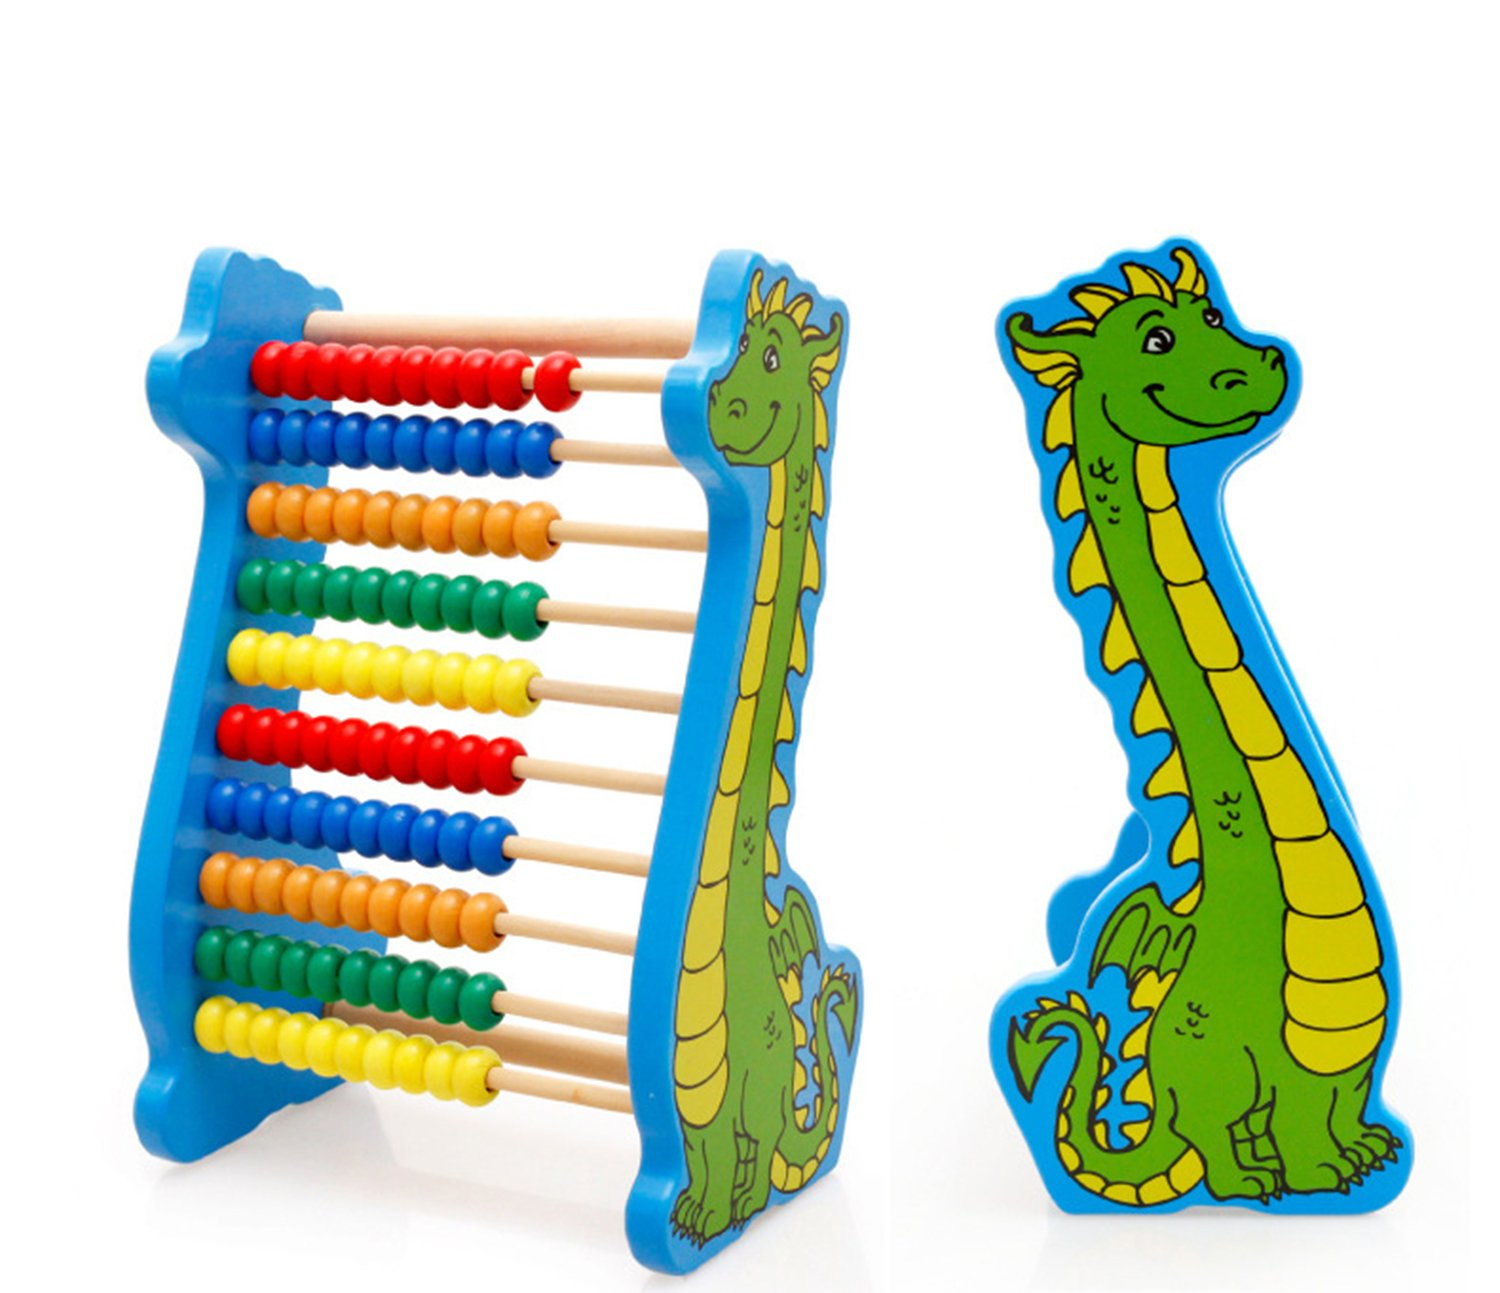 Lewo Wooden Counting Frame Bead Maze Abacus Preschool Children